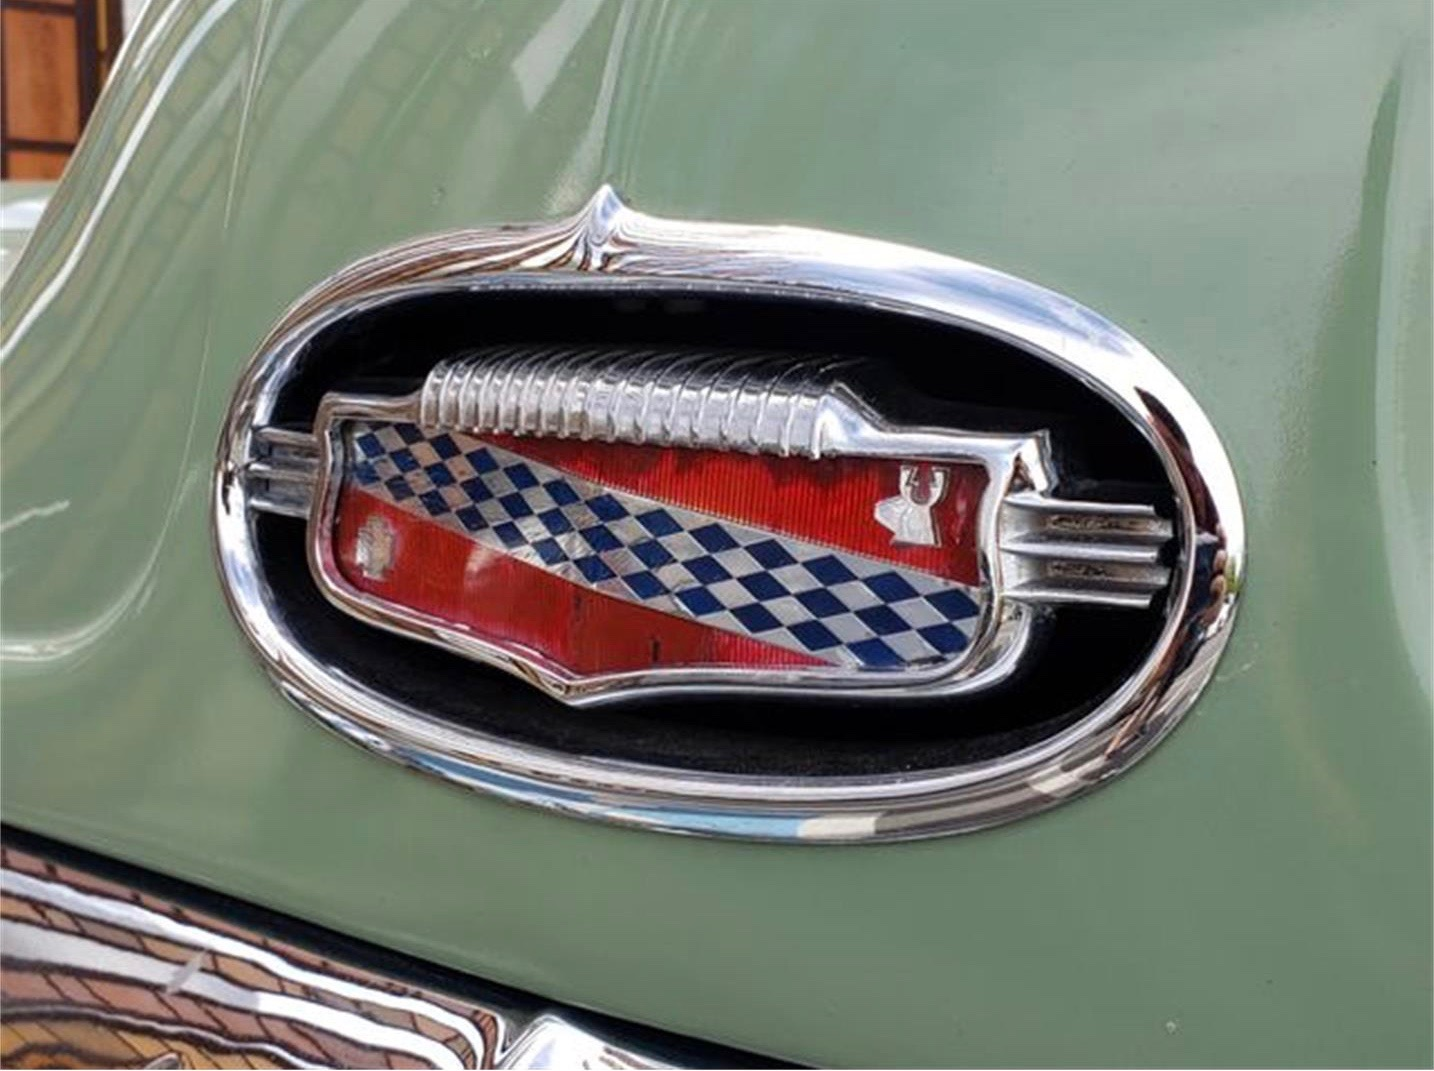 1952 Buick Super, This 1952 Buick Super Riviera 'presents' itself very nicely, ClassicCars.com Journal